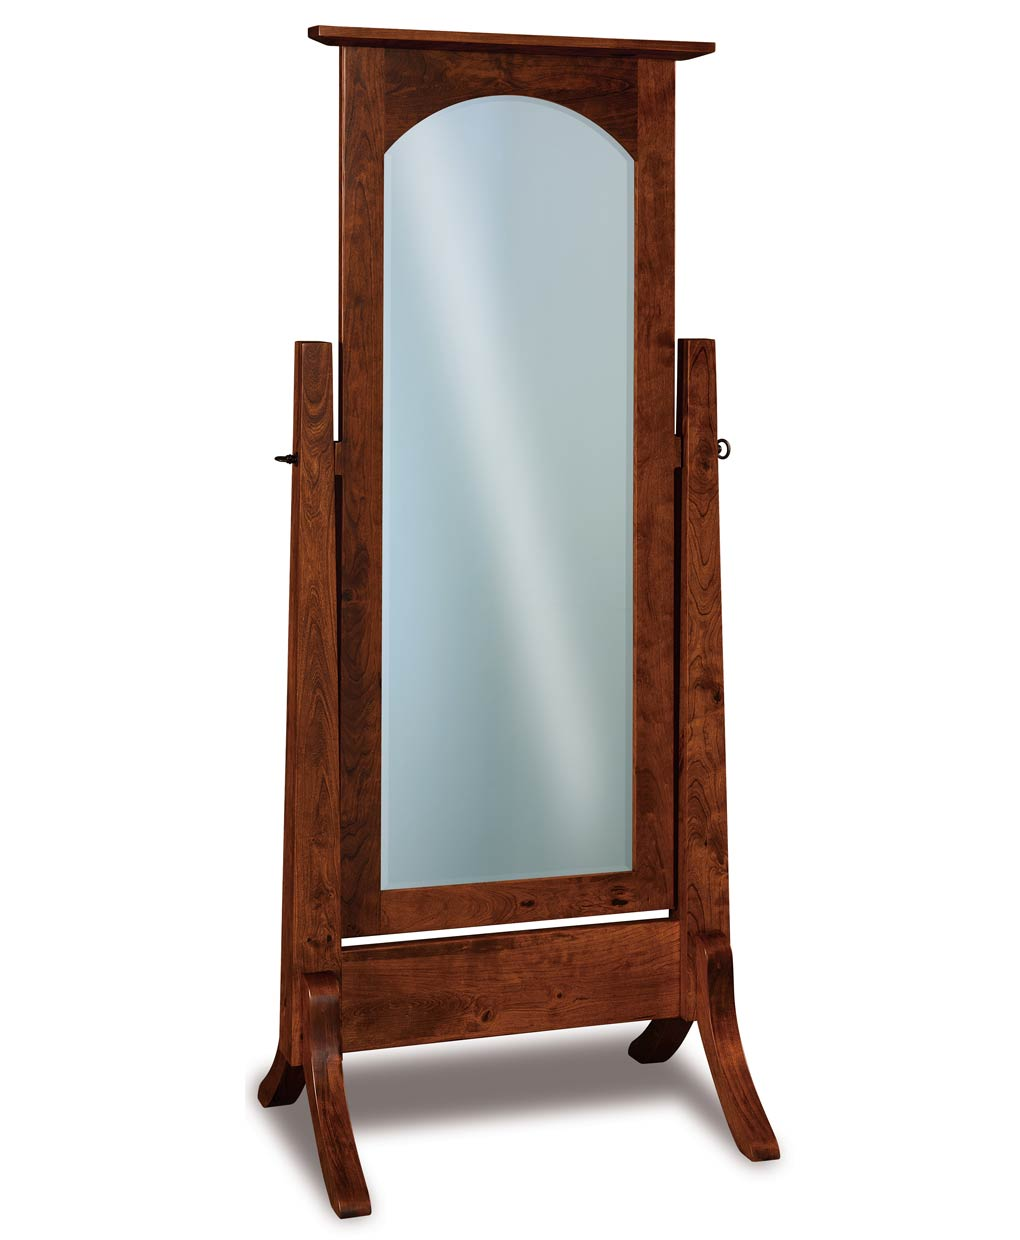 Artesa cheval mirror amish direct furniture for Cheval mirror